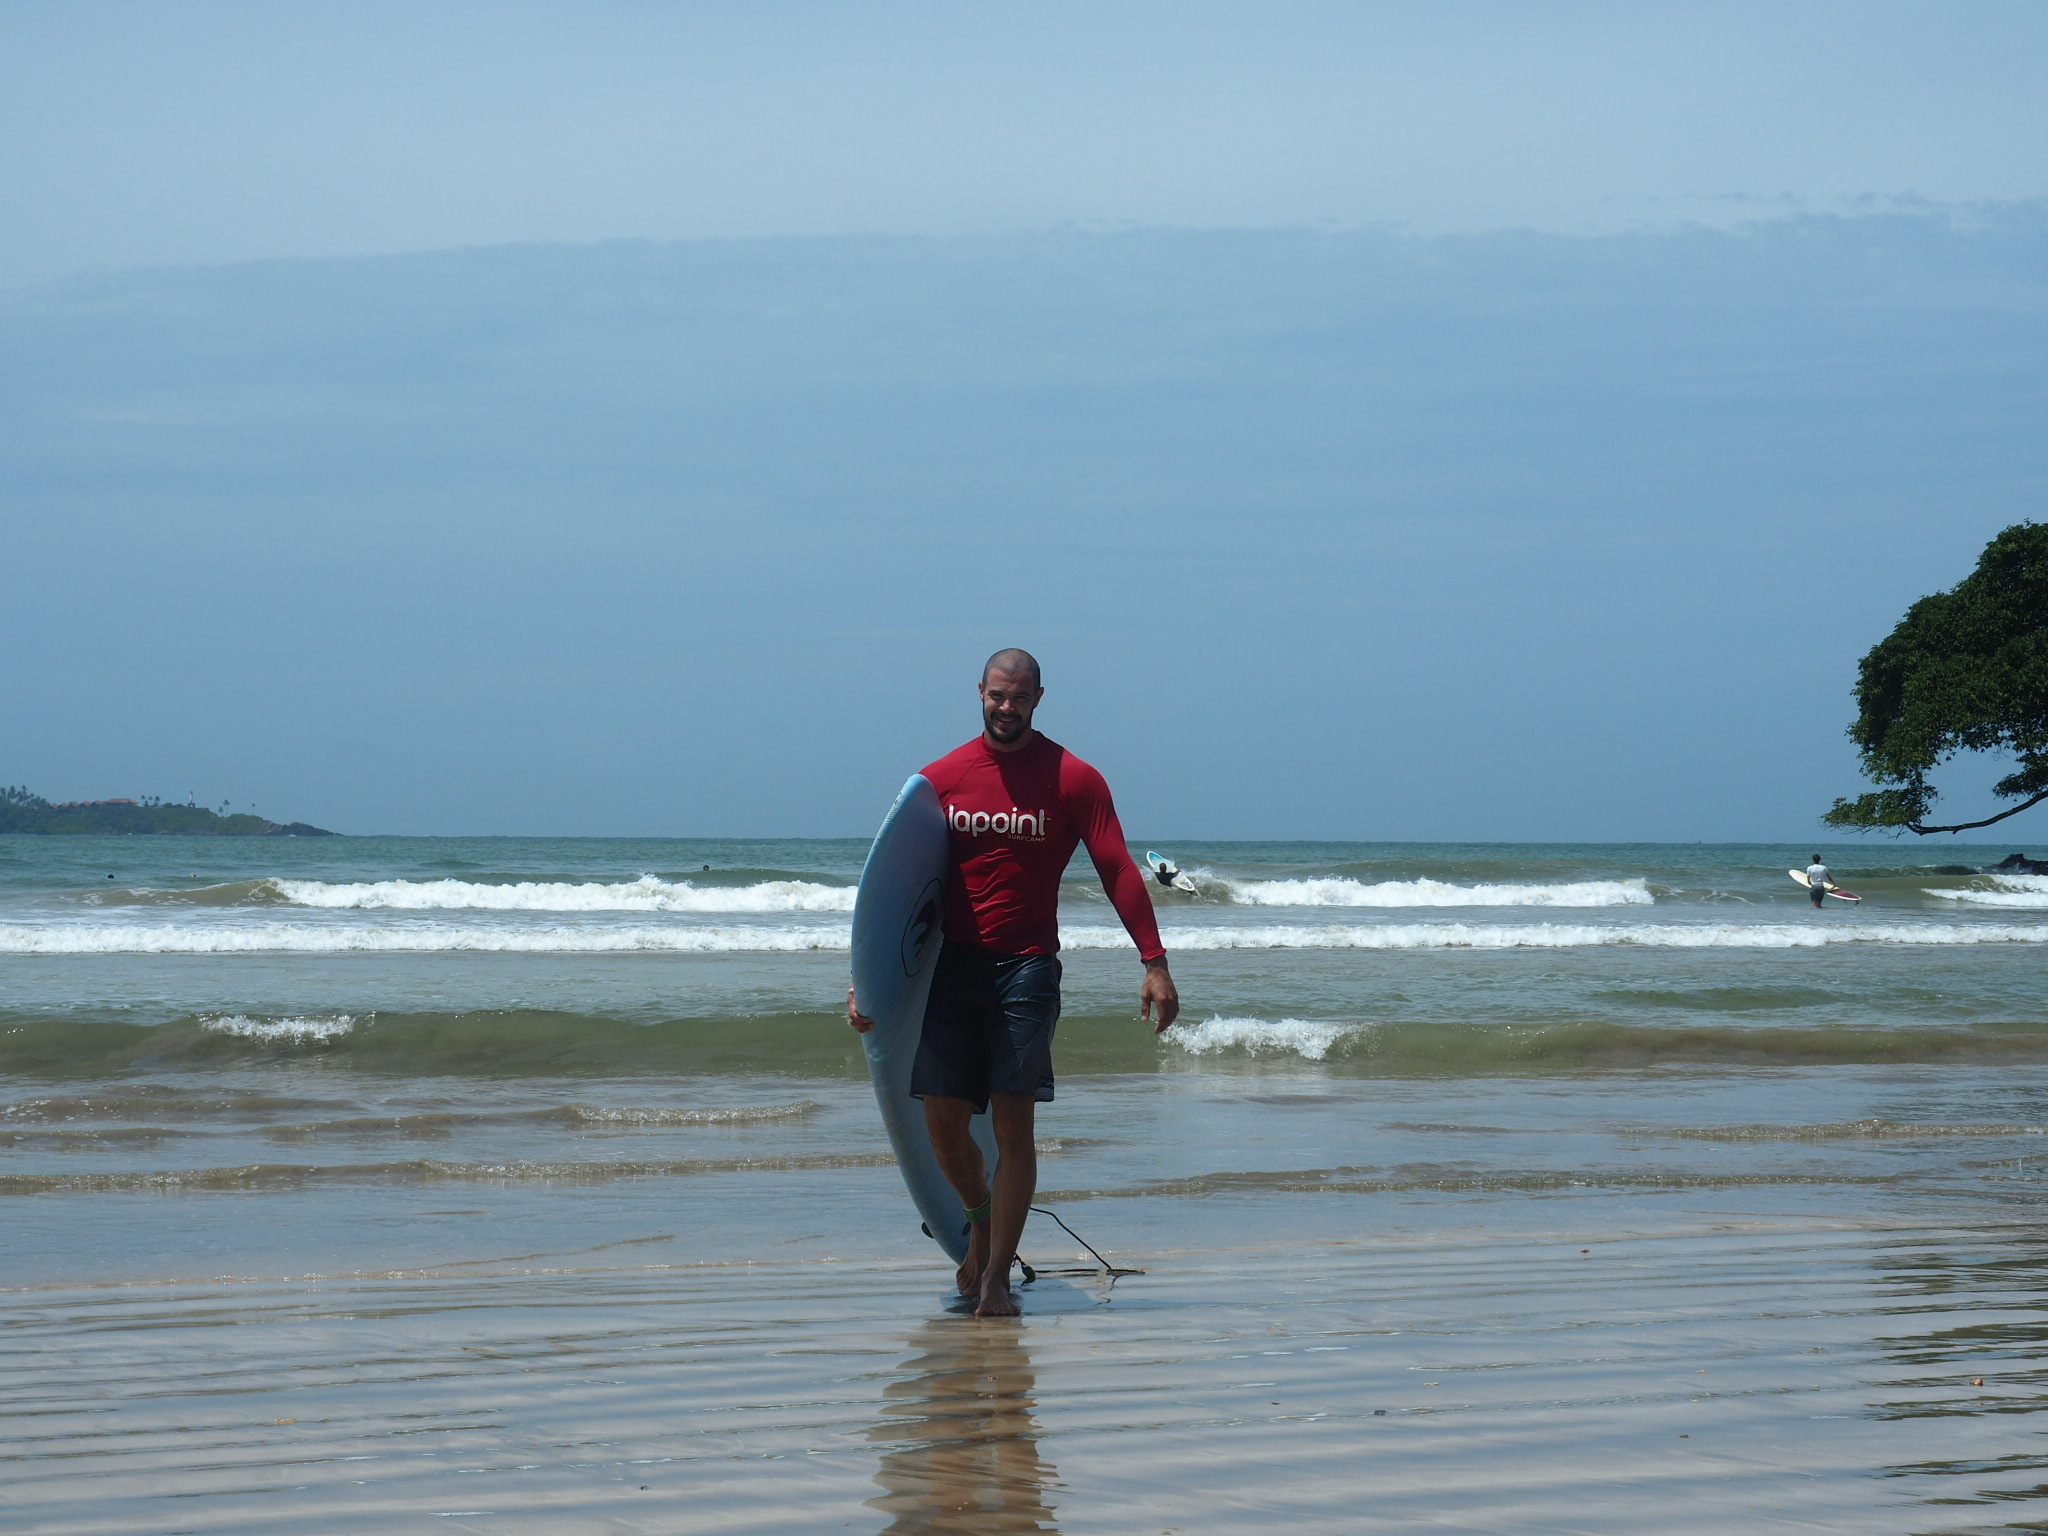 The smile of a man who has battled the waves for 2hrs straight. A serious workout!